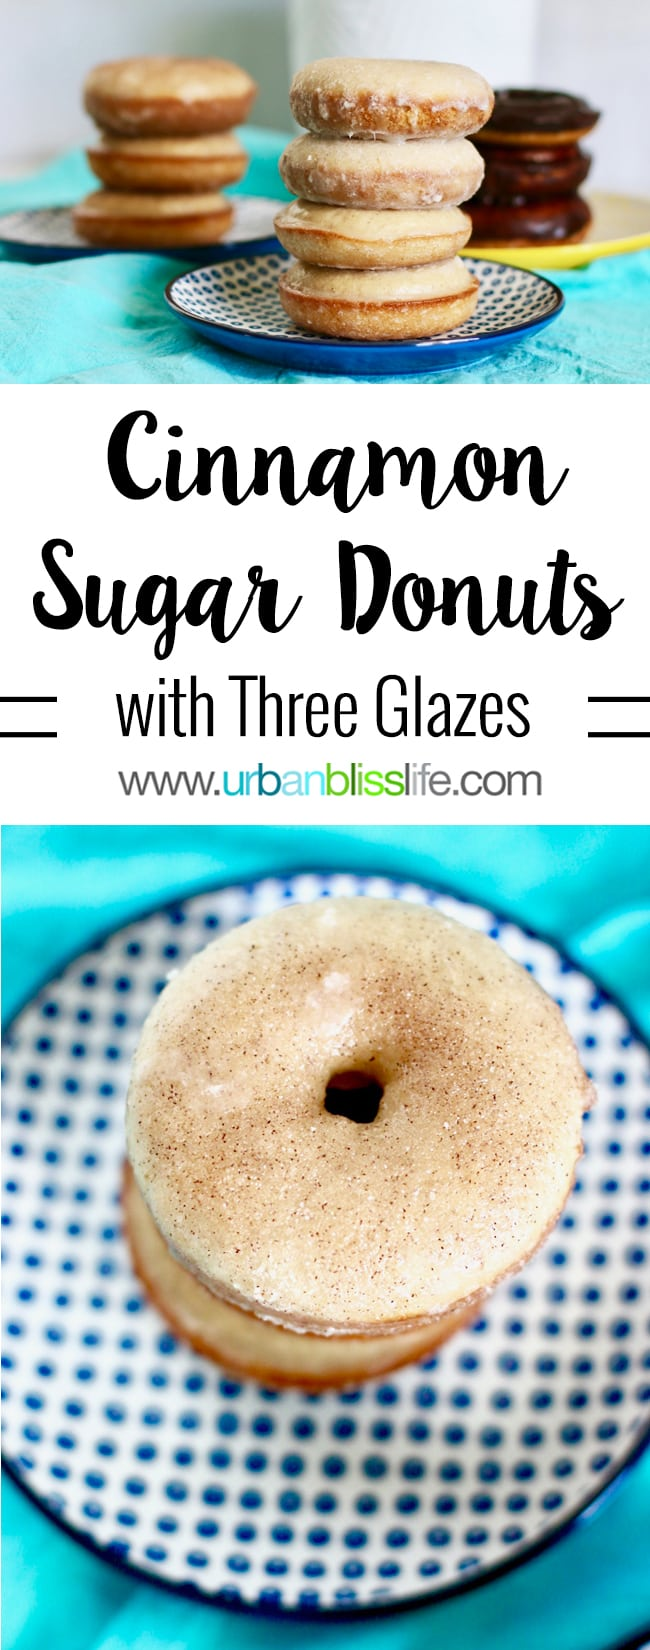 Baked Cinnamon Sugar Donuts With Three Glazes Recipe